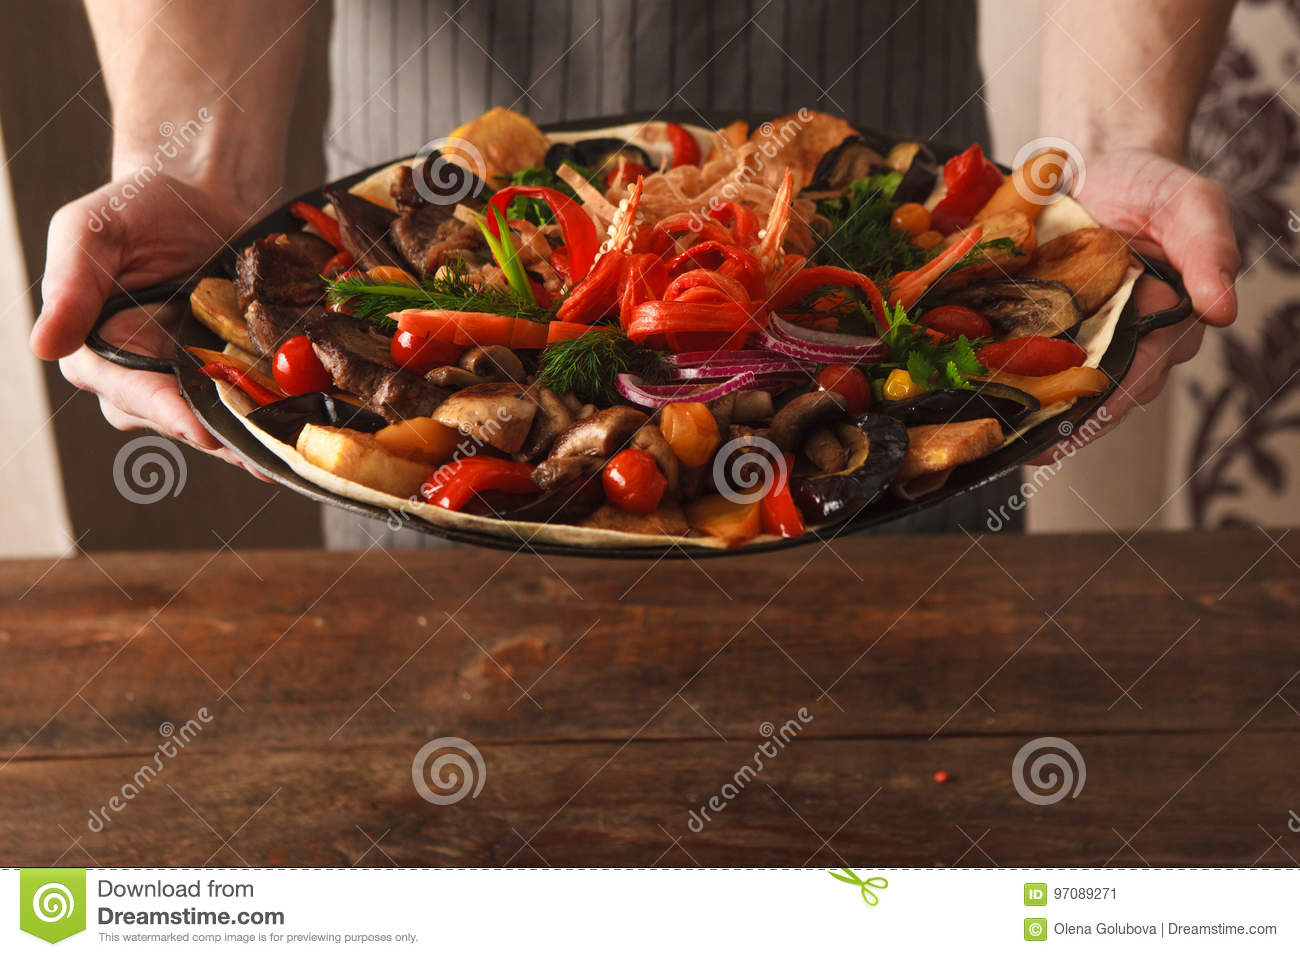 Dish With Stewed Meat And Vegetables On Plate Stock Image Image Of Cuisine National 97089271